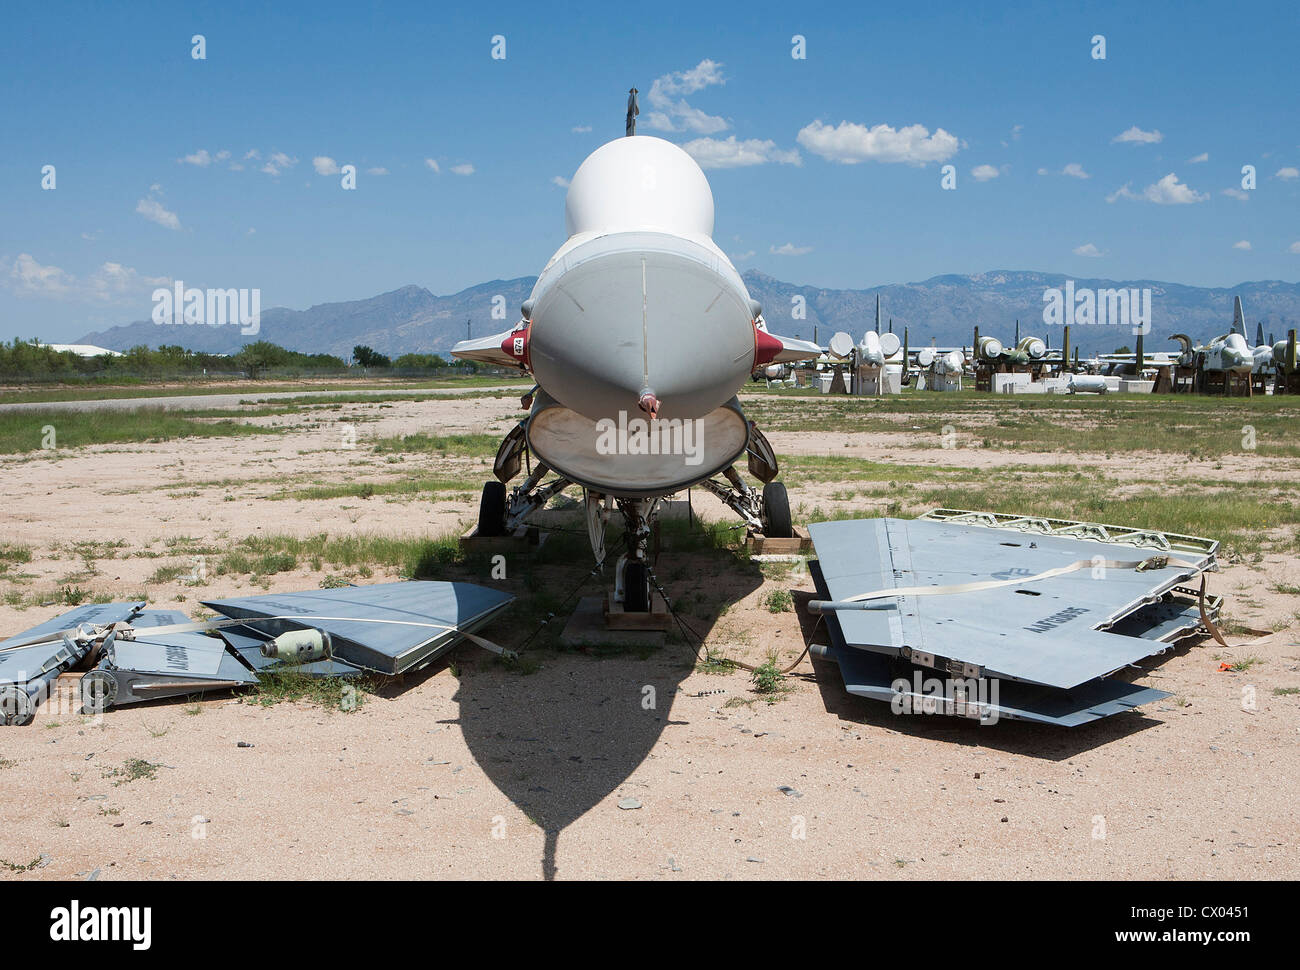 F-16 Fighting Falcon aircraft in storage at the 309th Aerospace Maintenance and Regeneration Group at Davis-Monthan - Stock Image